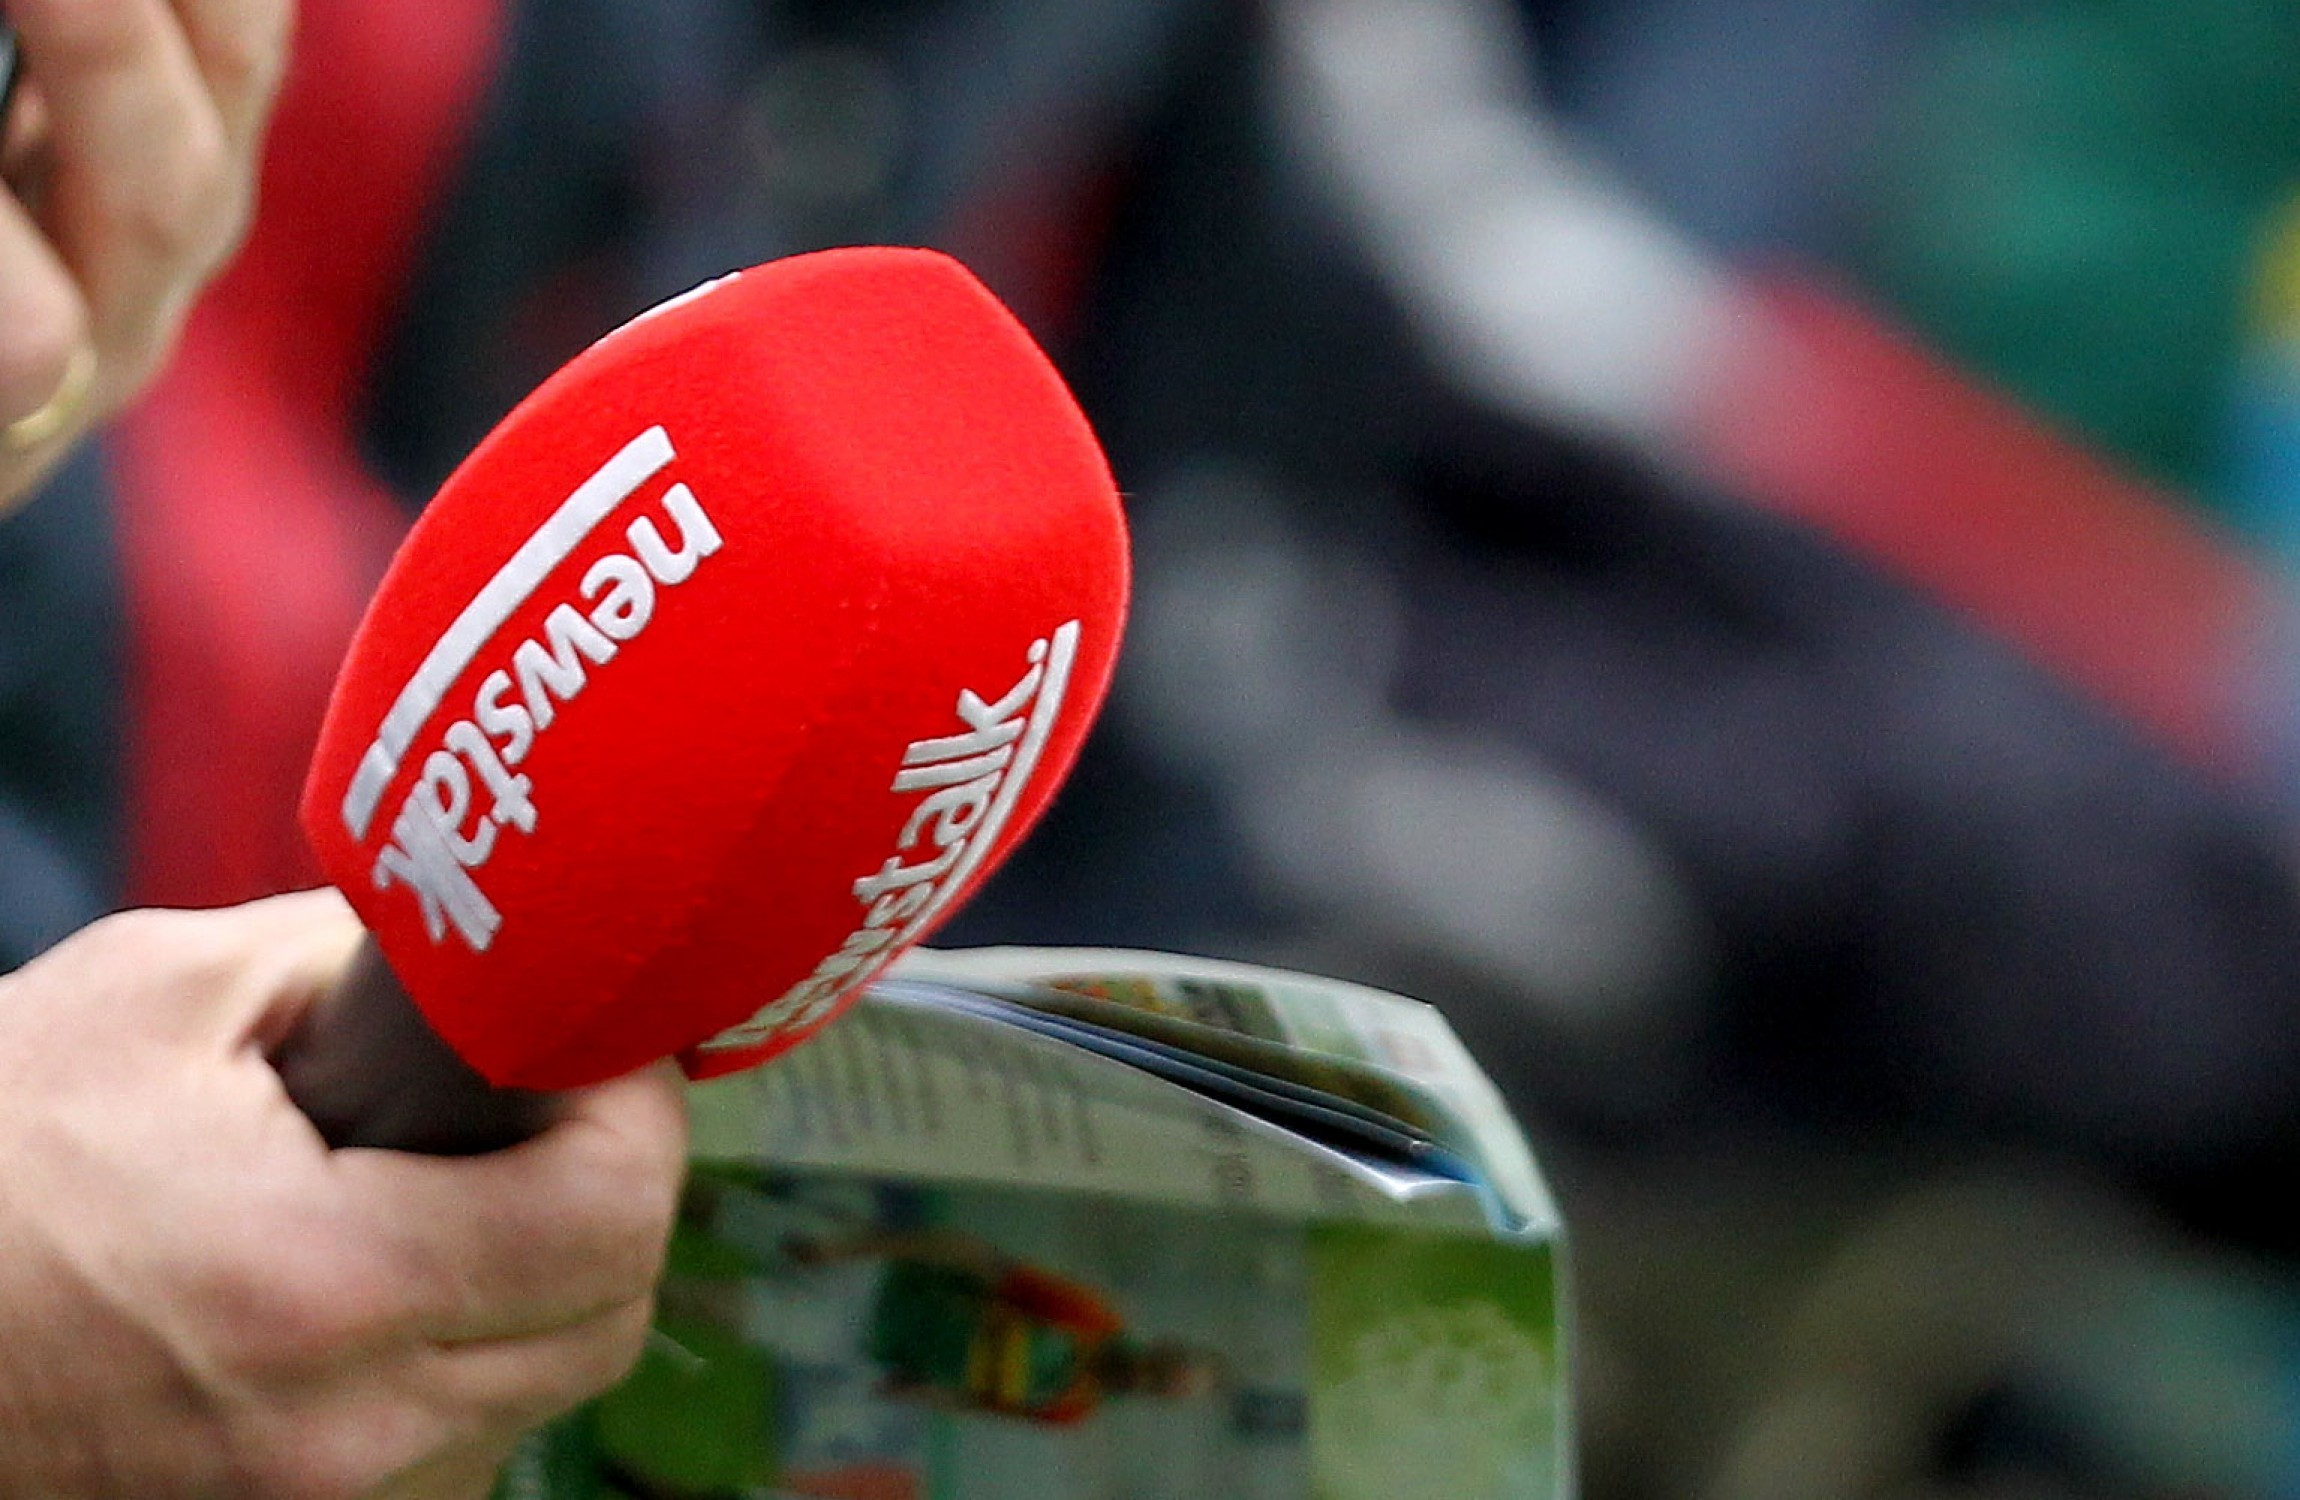 Newstalk Question Rte S Use Of State Funding To Win Exclusive Gaa